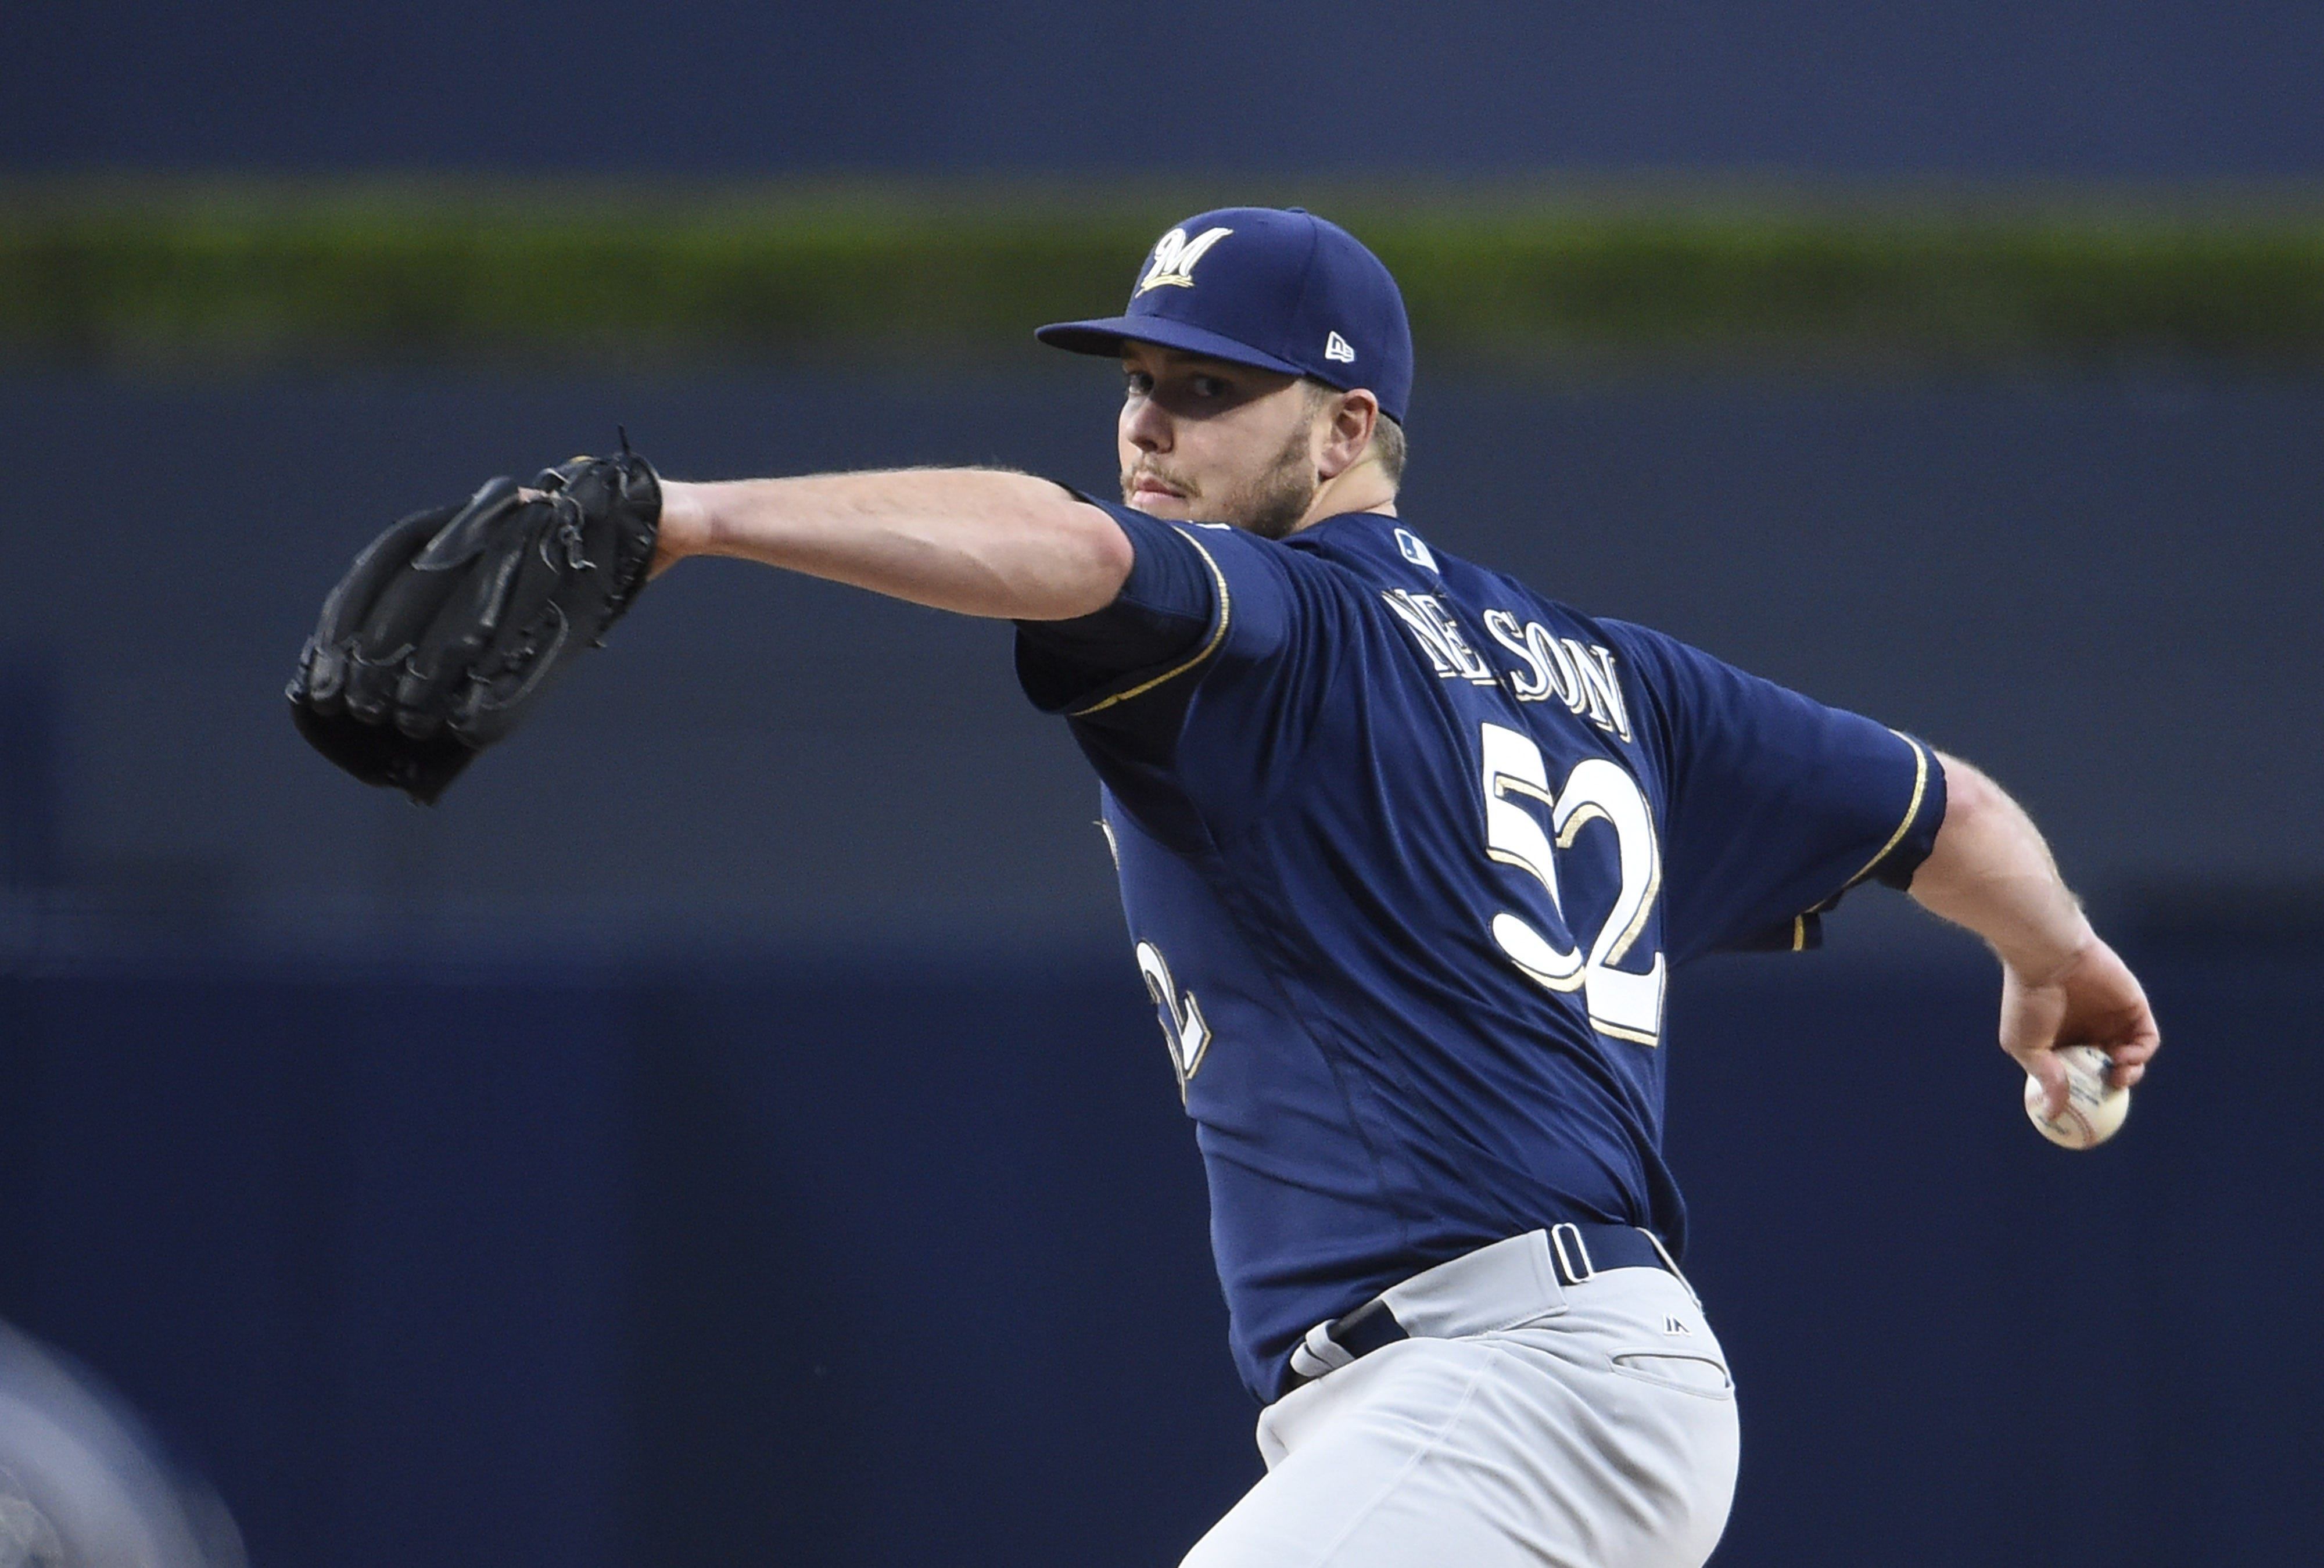 Brewers send right-hander Jimmy Nelson in opener of quick two-game series against Toronto